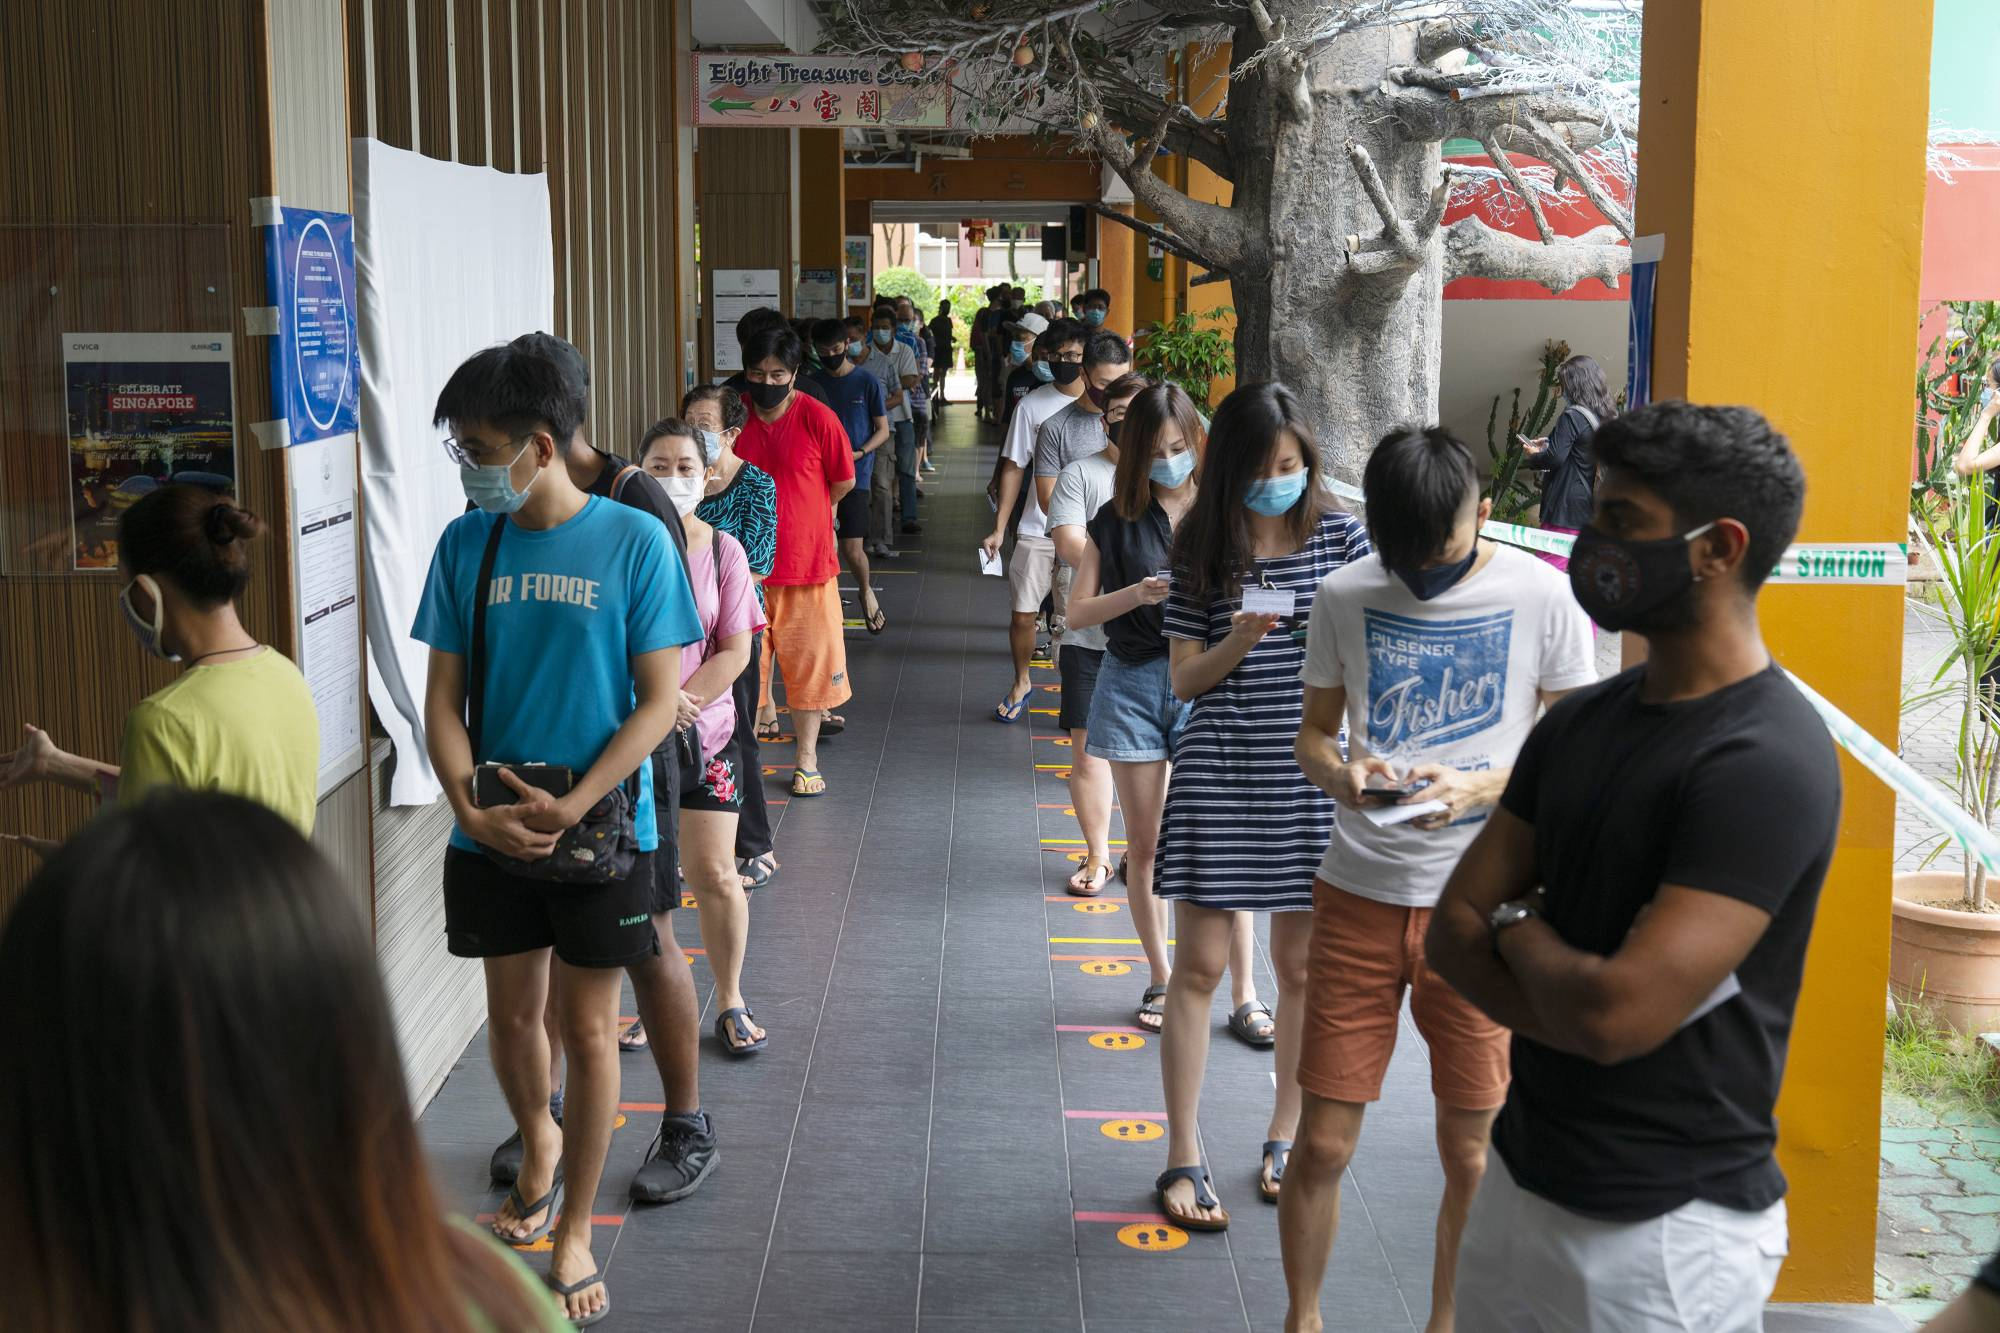 Voters observe social distancing measures while waiting in line at a polling station in Singapore on Friday.   BLOOMBERG